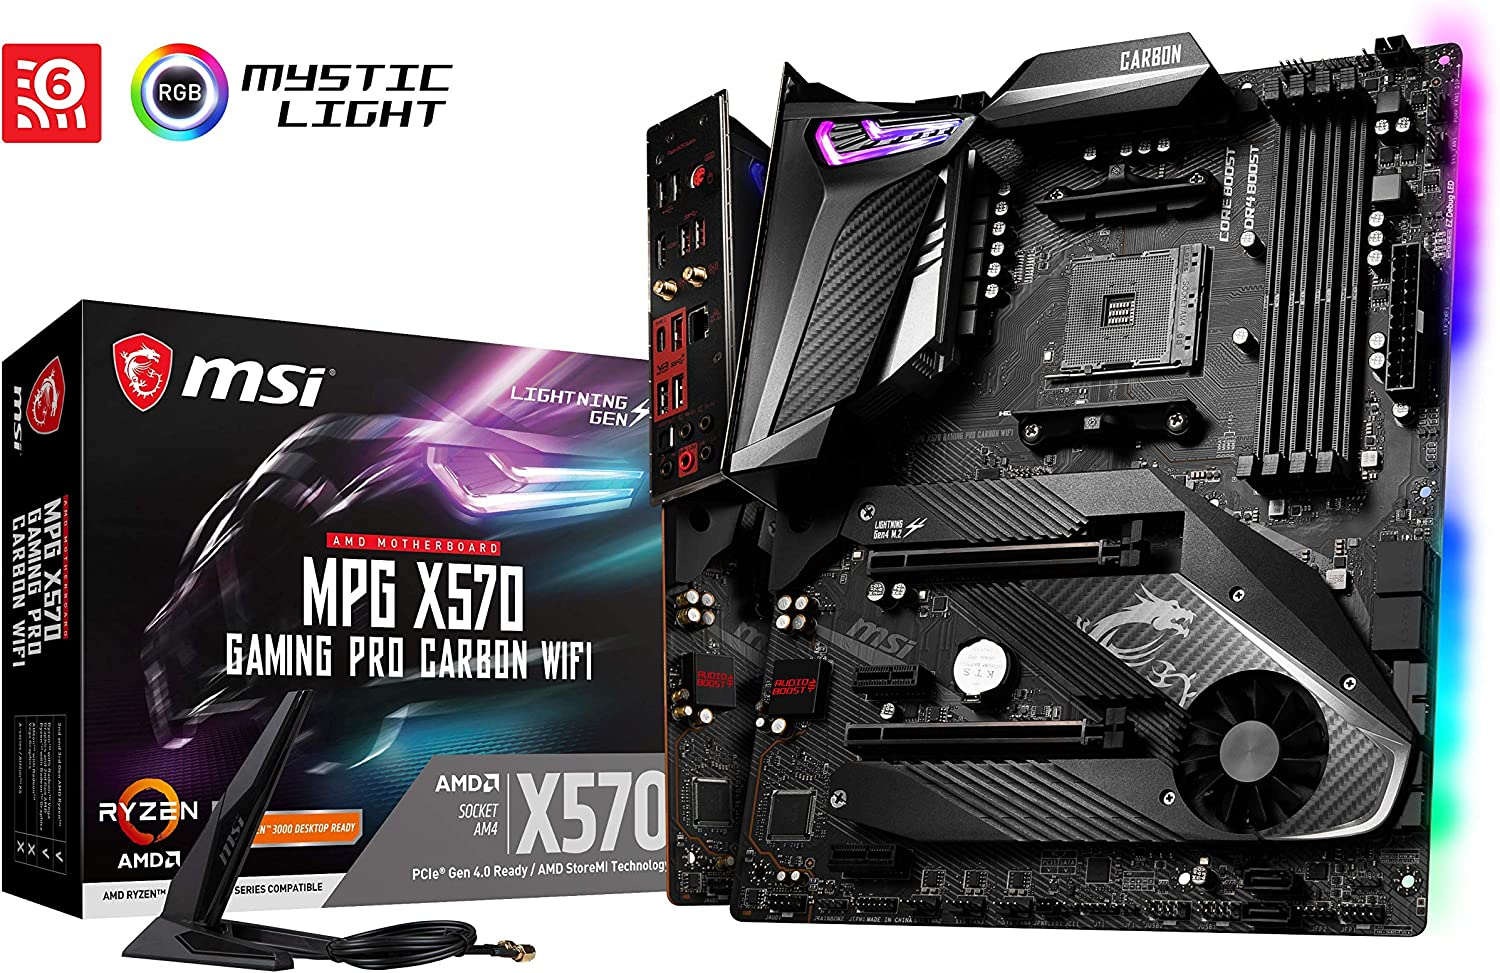 MSI AMD X570 Gaming Pro Carbon ATX DDR4-SDRAM Motherboard